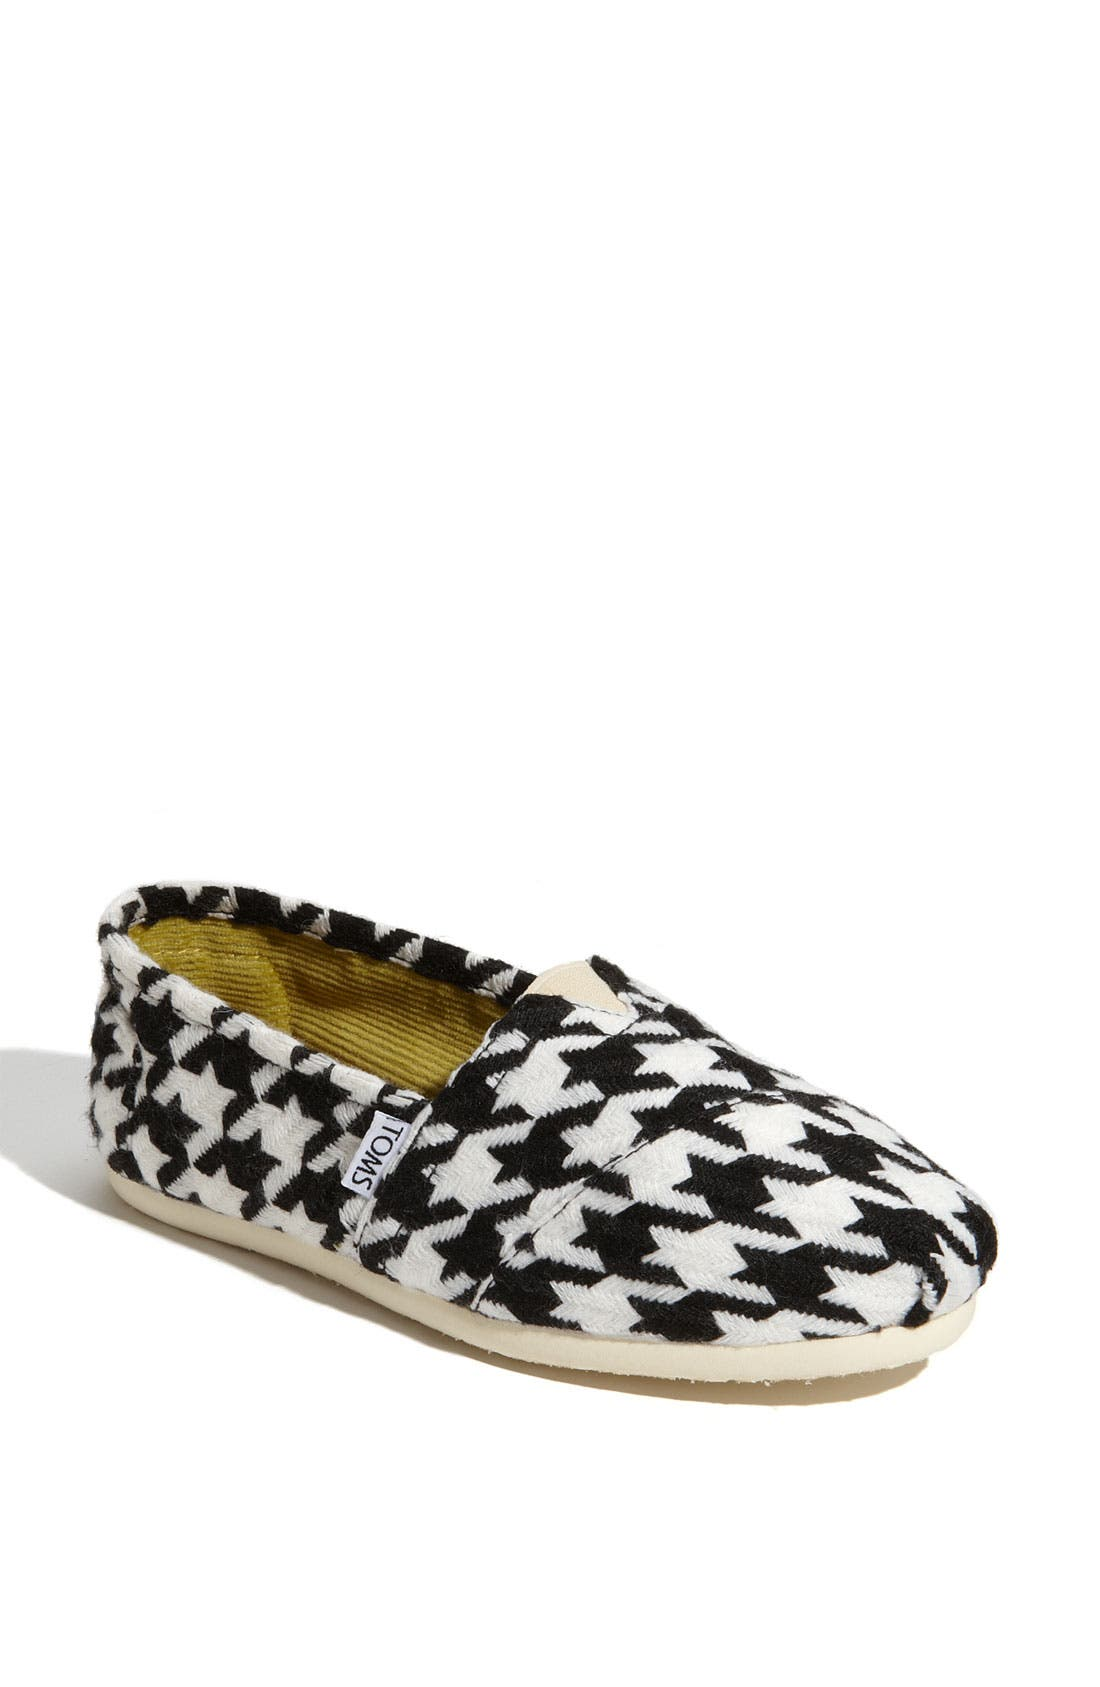 Alternate Image 1 Selected - TOMS 'Classic - Scottish Houndstooth' Slip-On